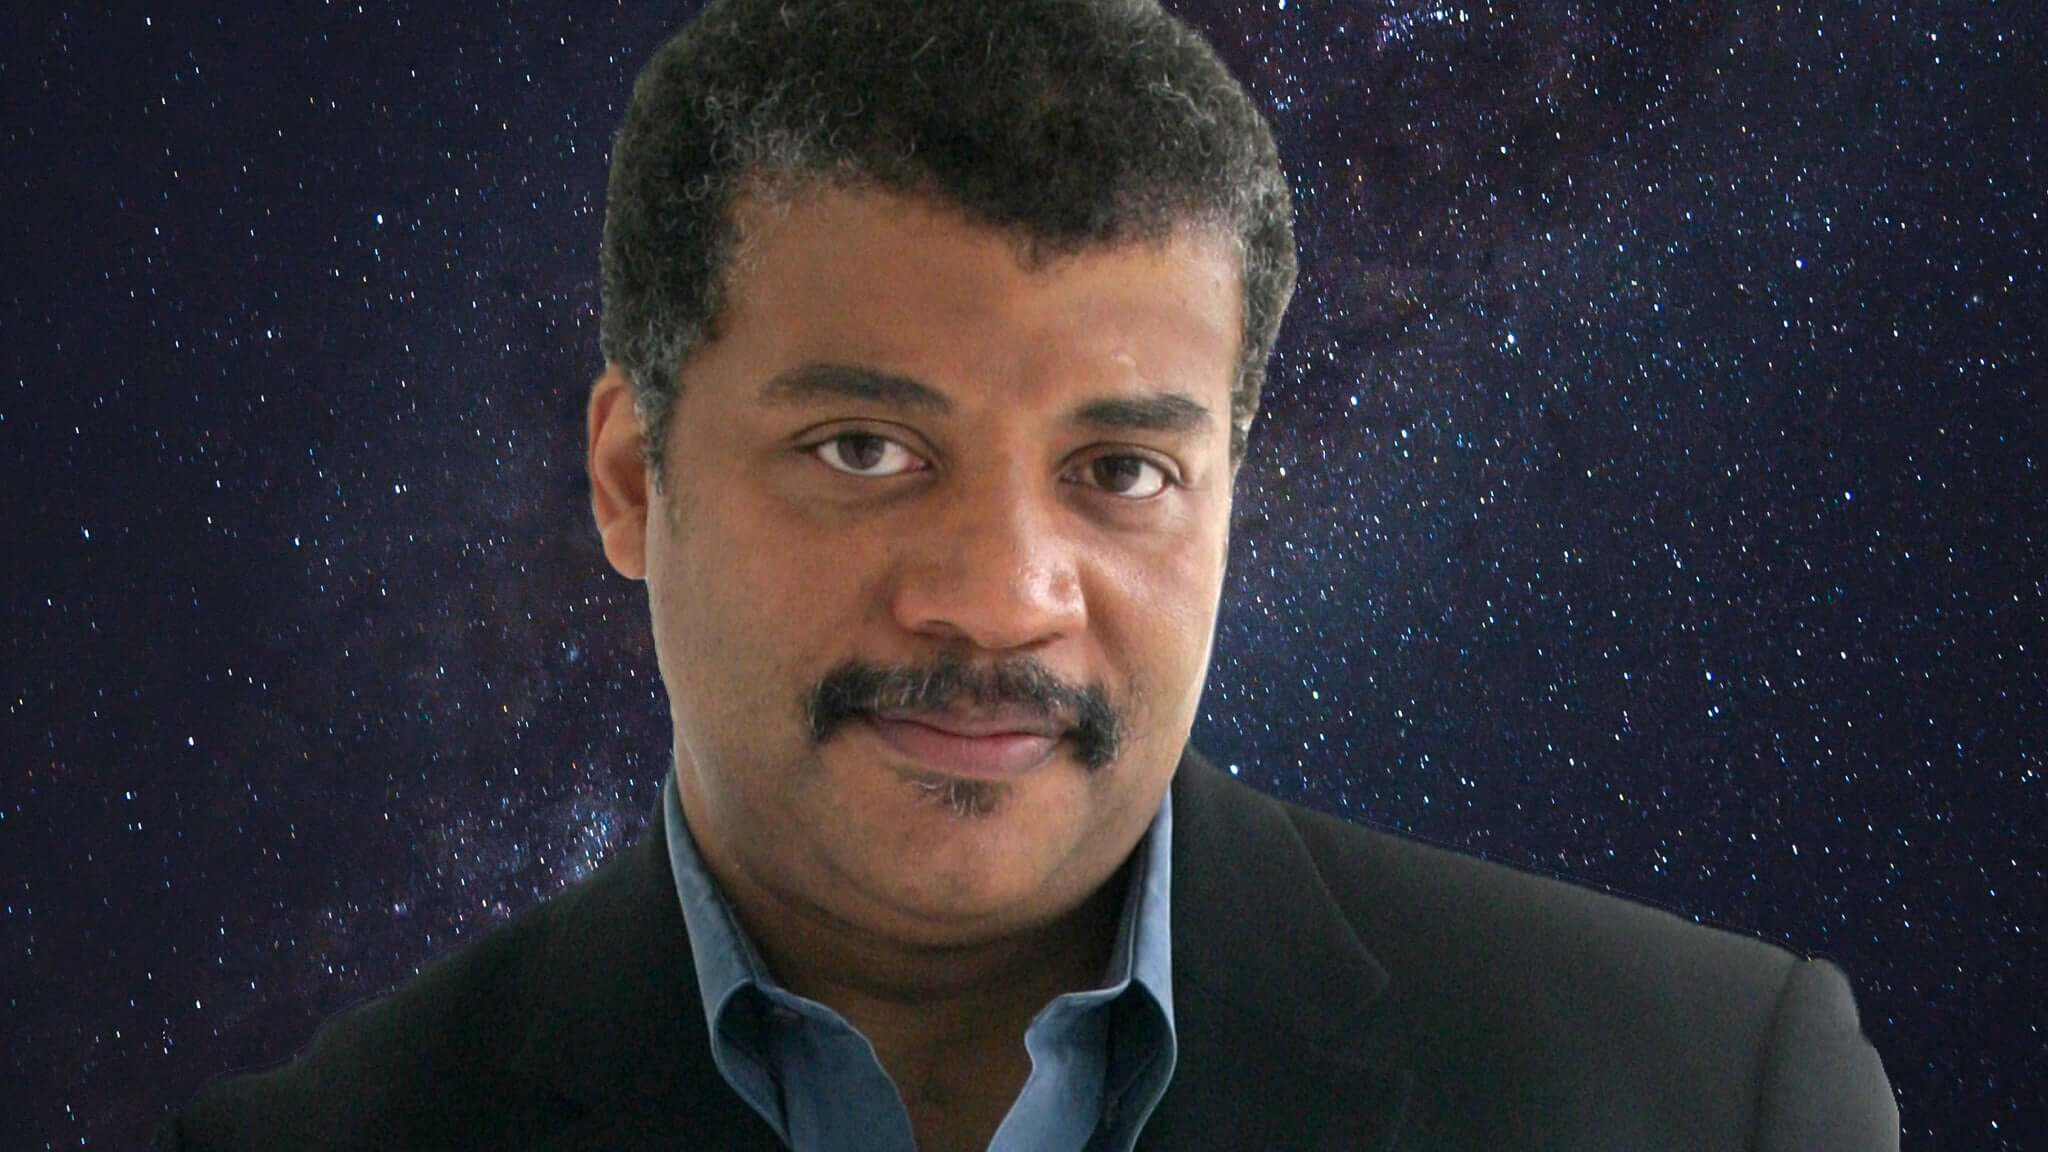 Best quotes by Neil deGrasse Tyson